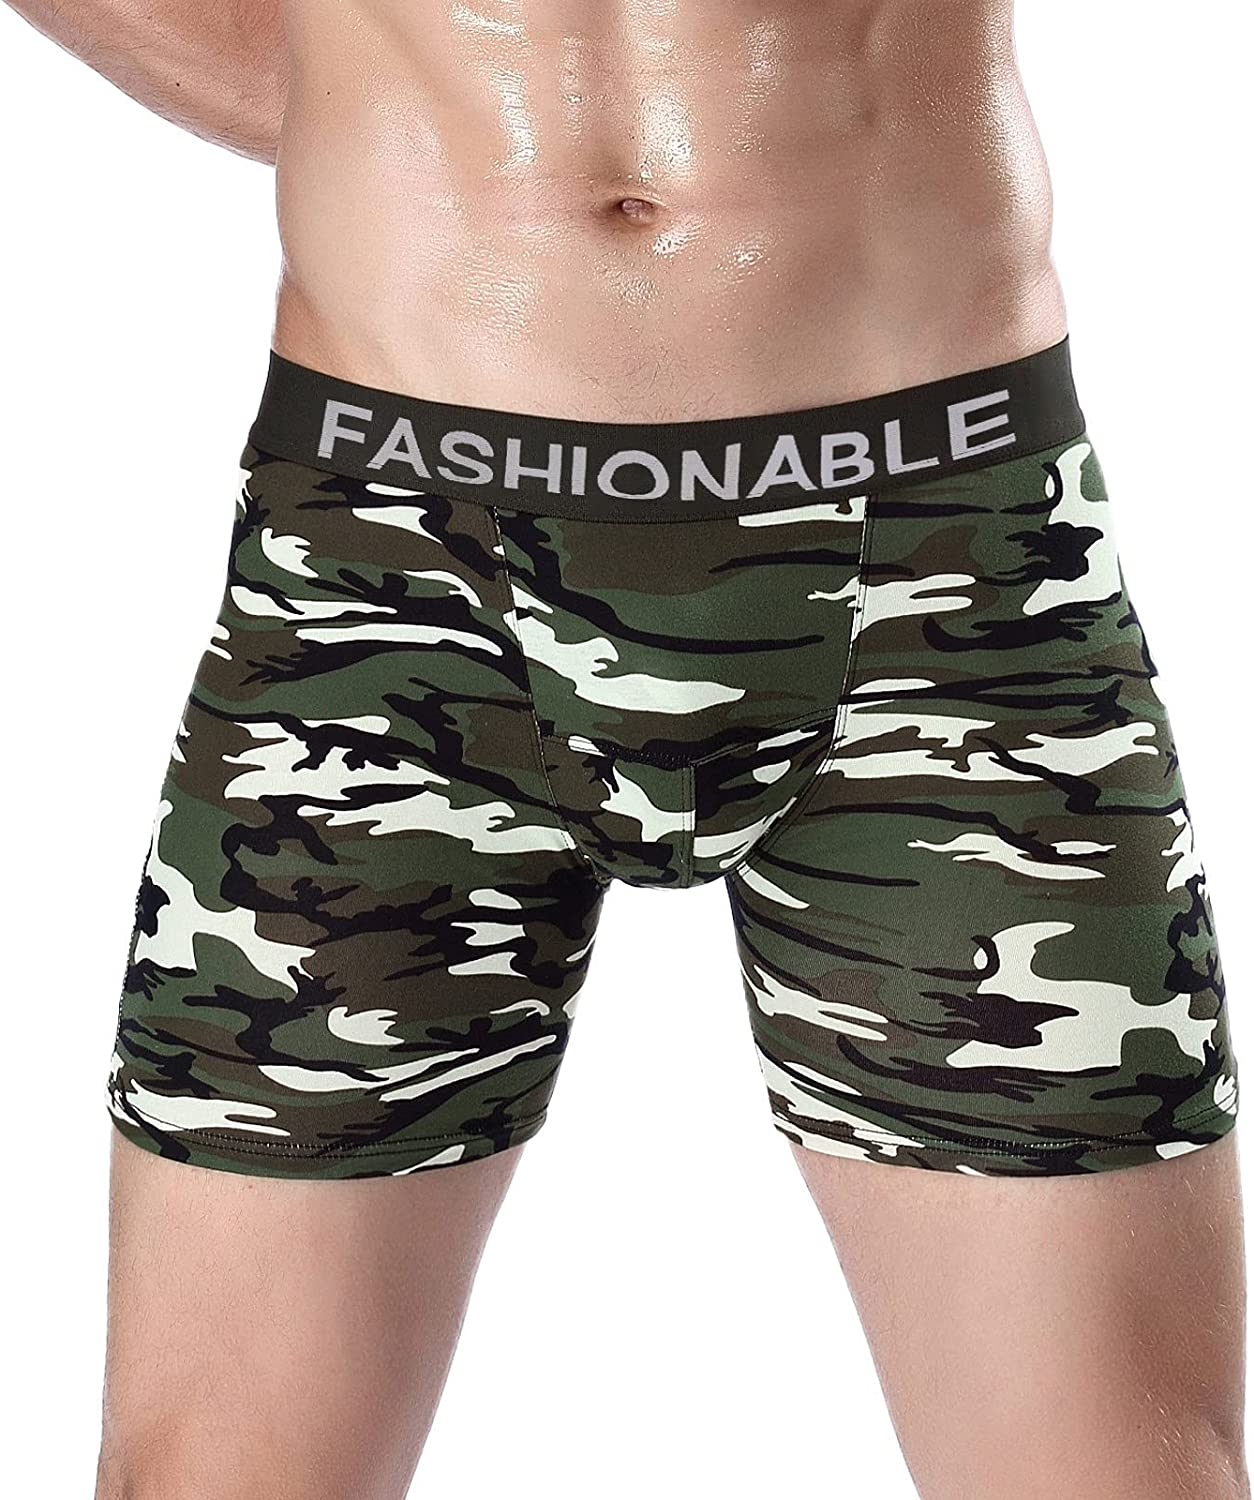 Mens Camouflage Boxer Briefs Underwear Comfort Breathable Cool Dri Fit Cotton Stretch Waistband Boxers G-Strings Thongs